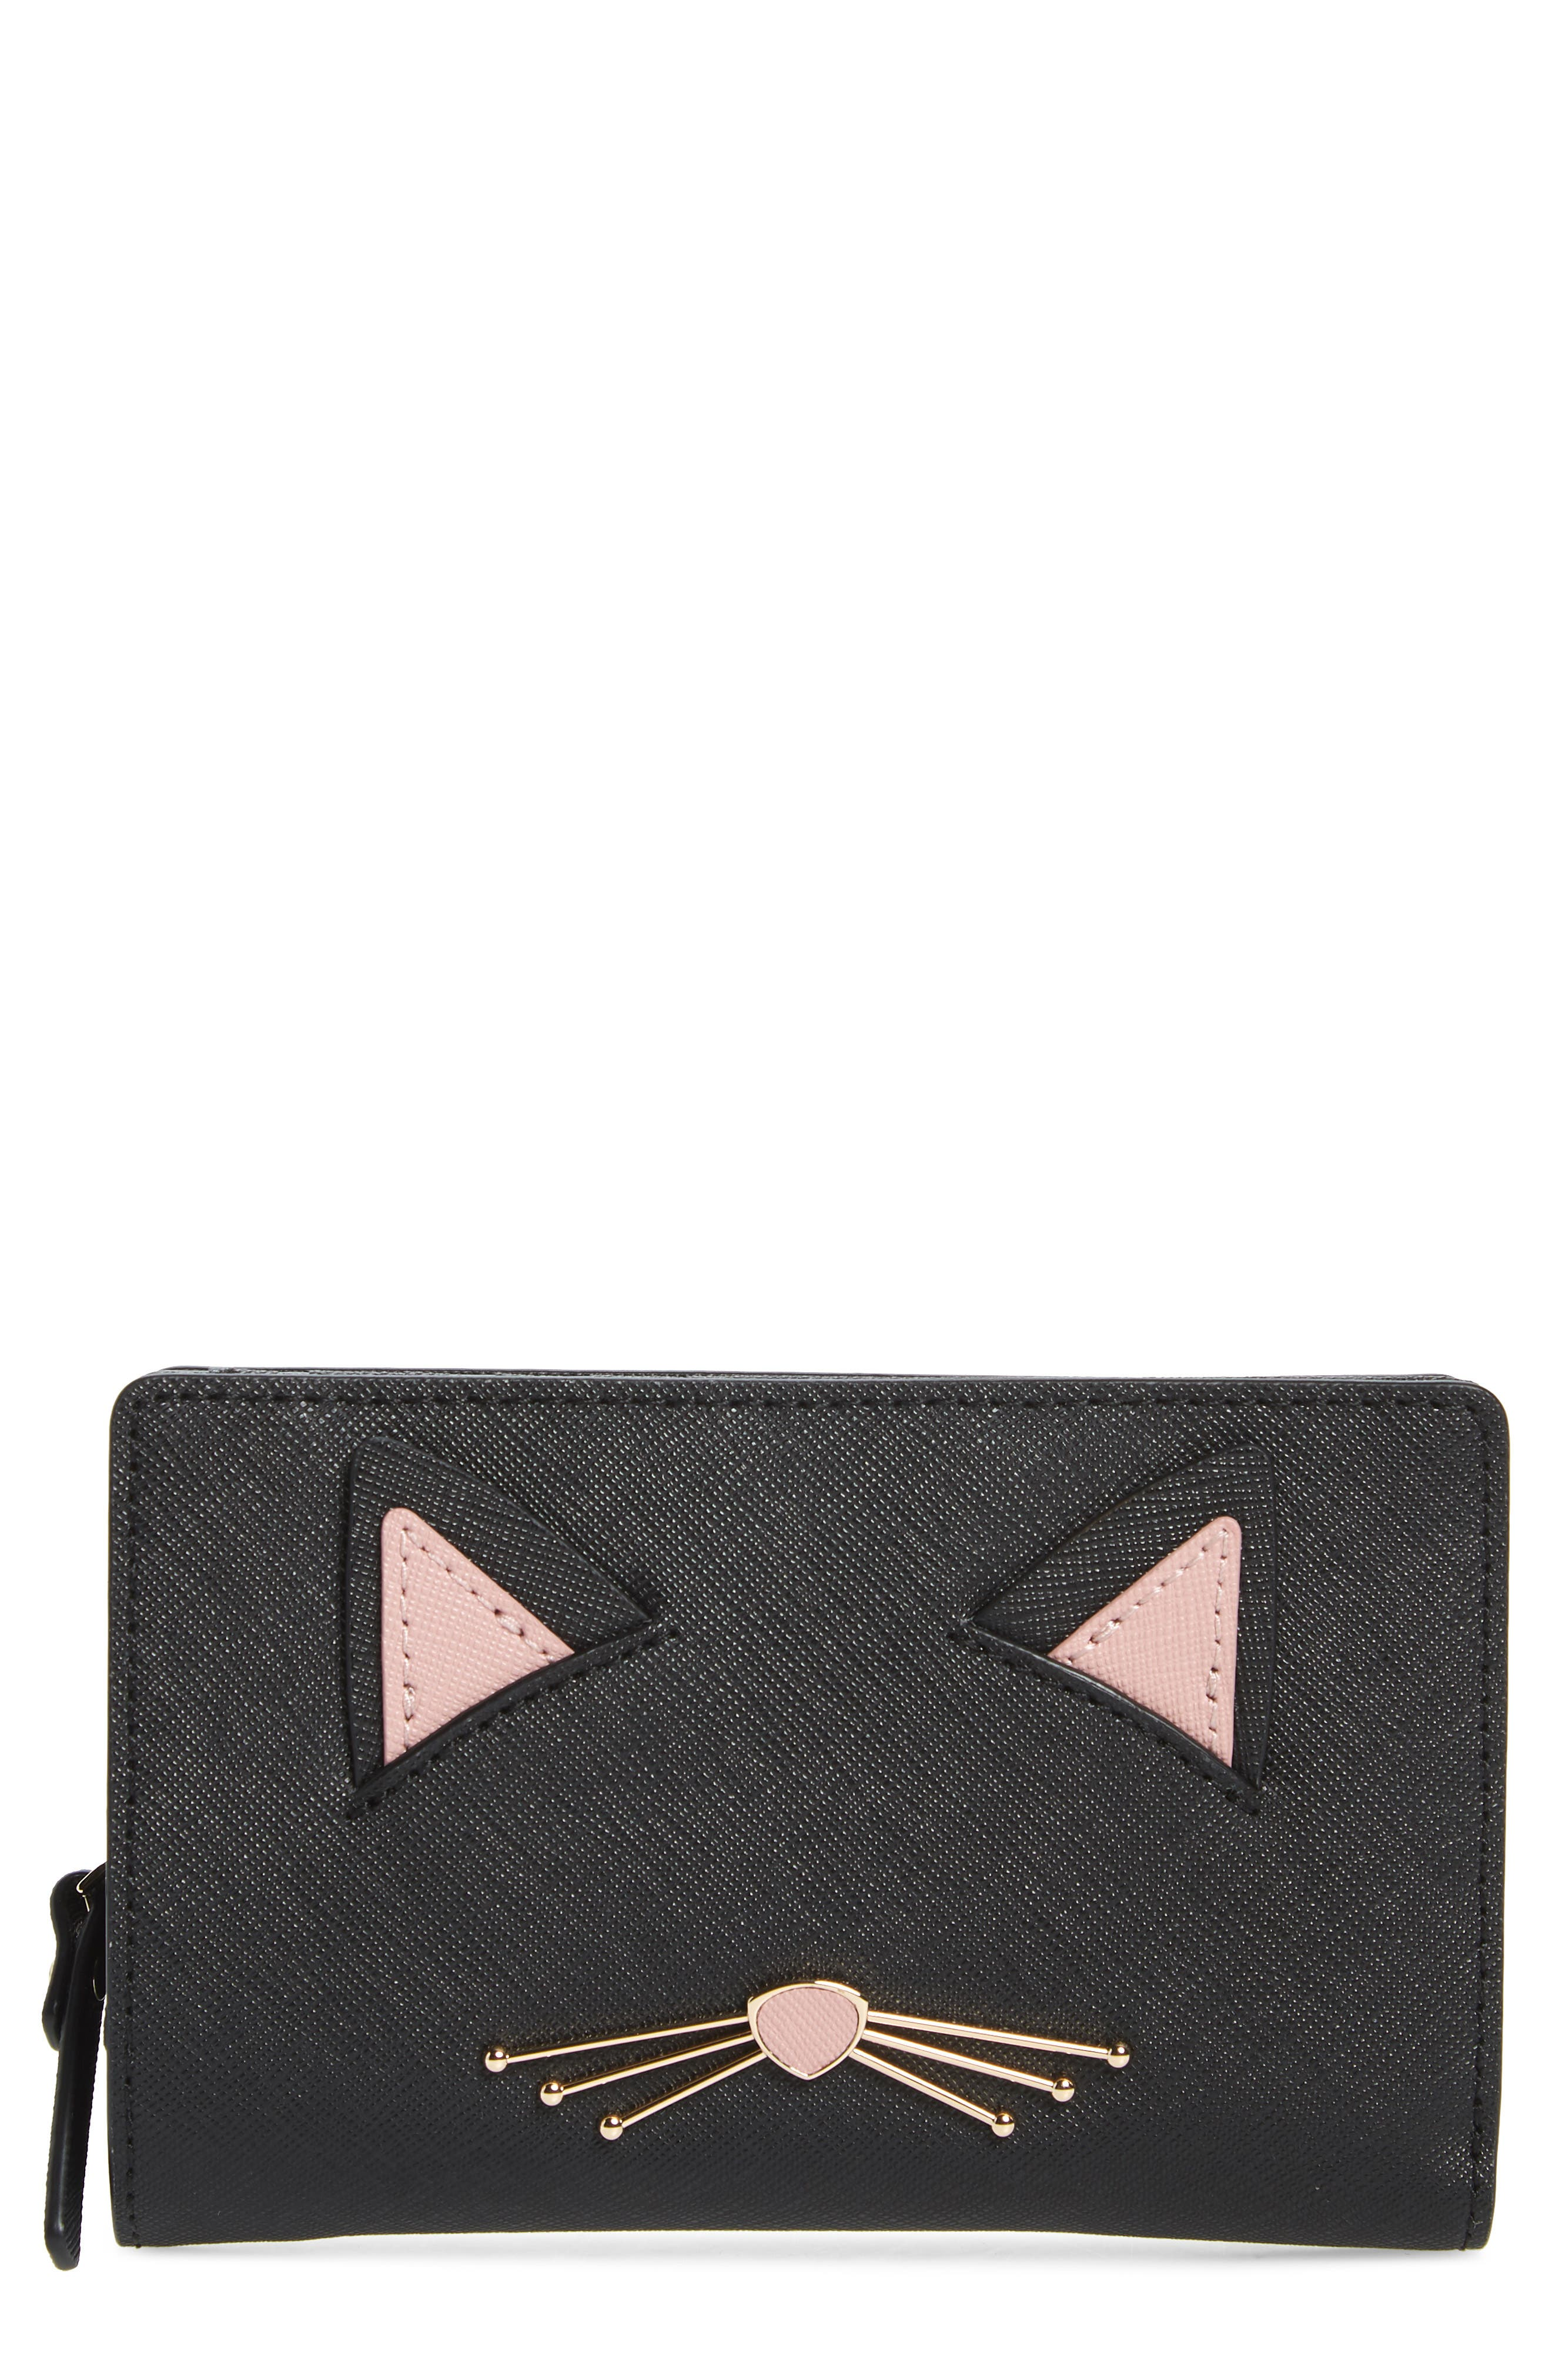 cats meow dara leather wallet, Main, color, 001